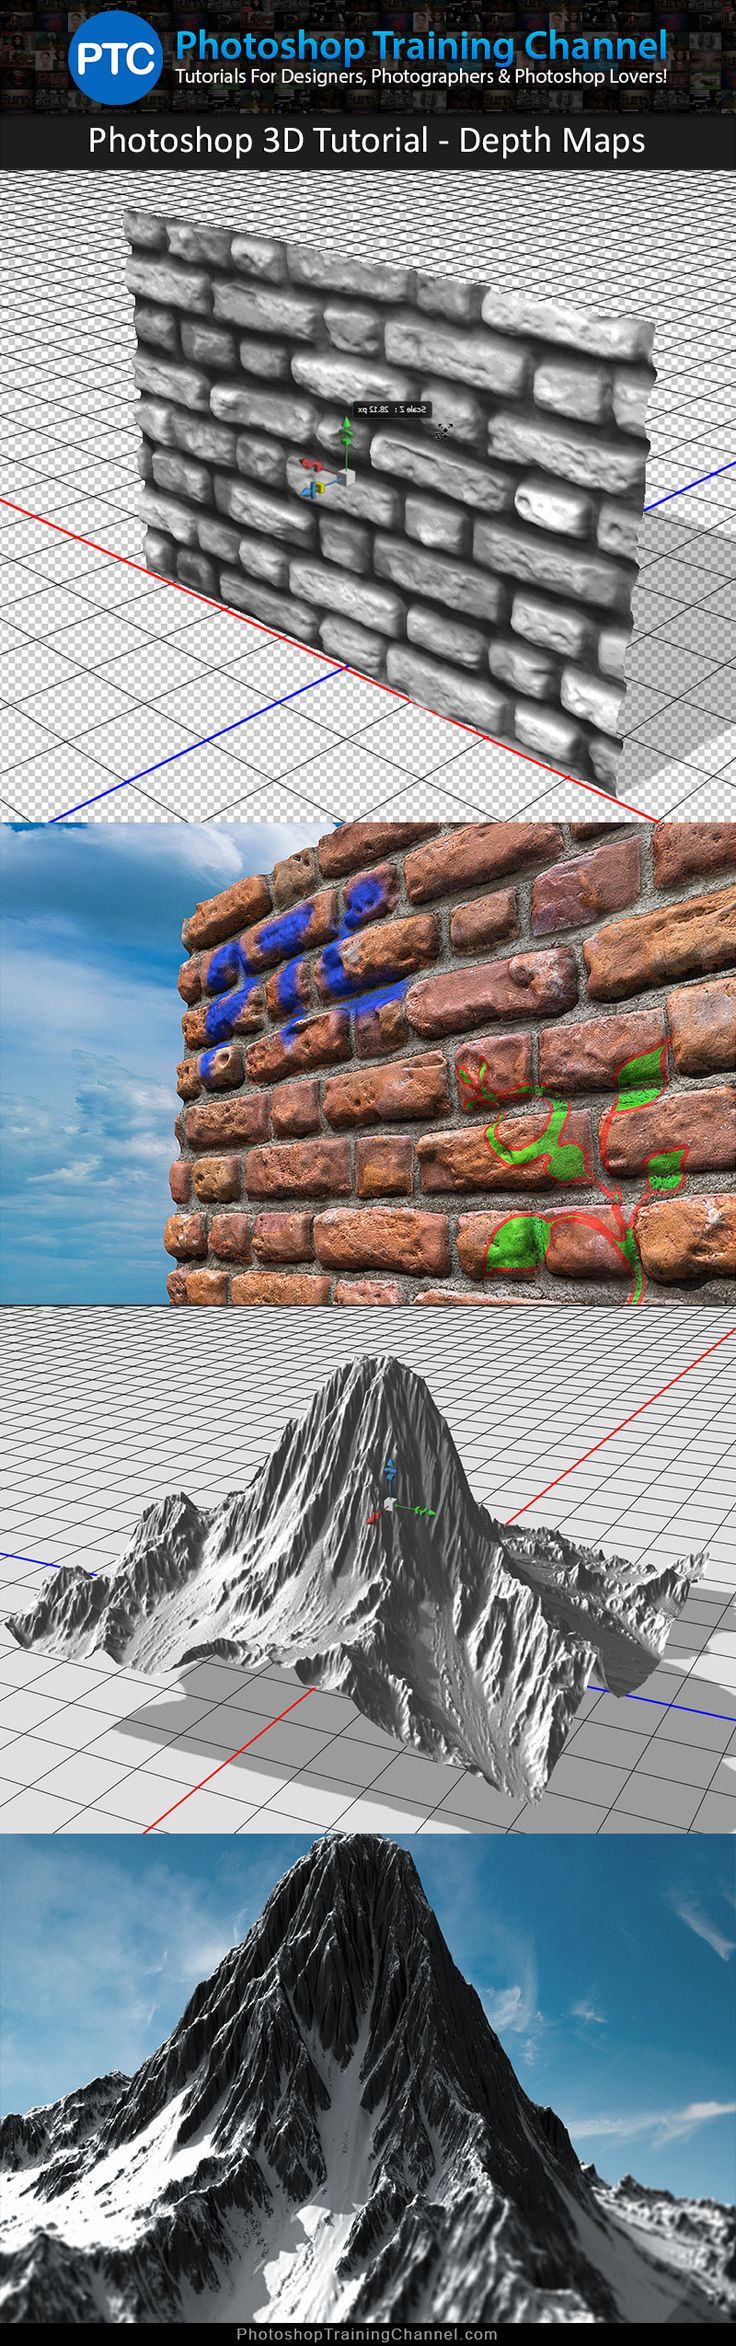 Photoshop 3D tutorial showing you how to work with Bump maps, Normal maps, and Depth maps.